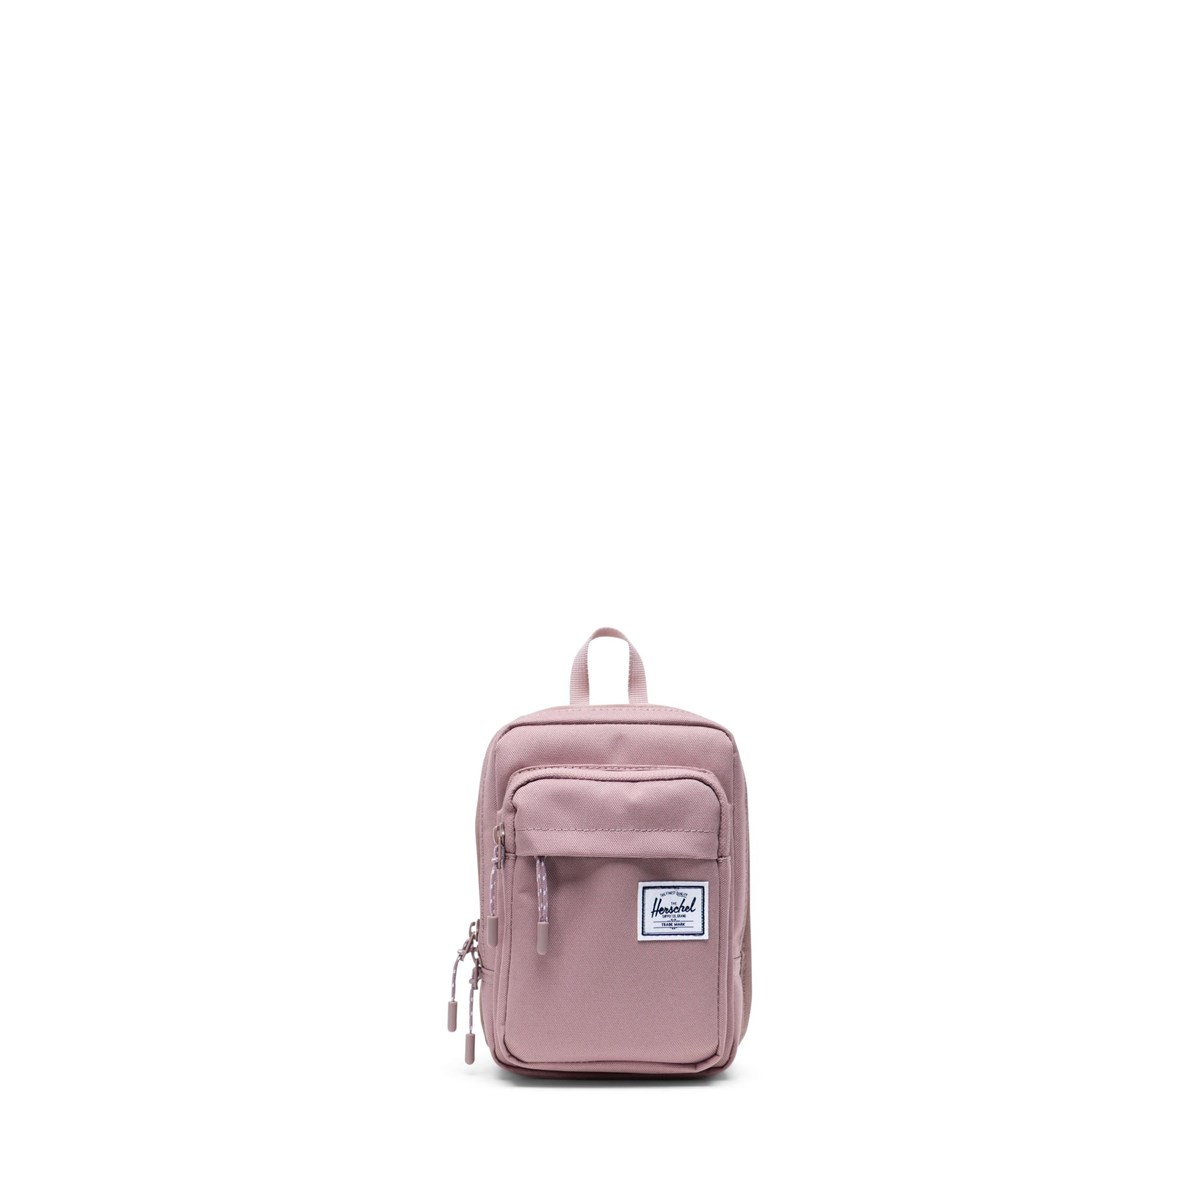 Form Crossbody Large in Ash Rose